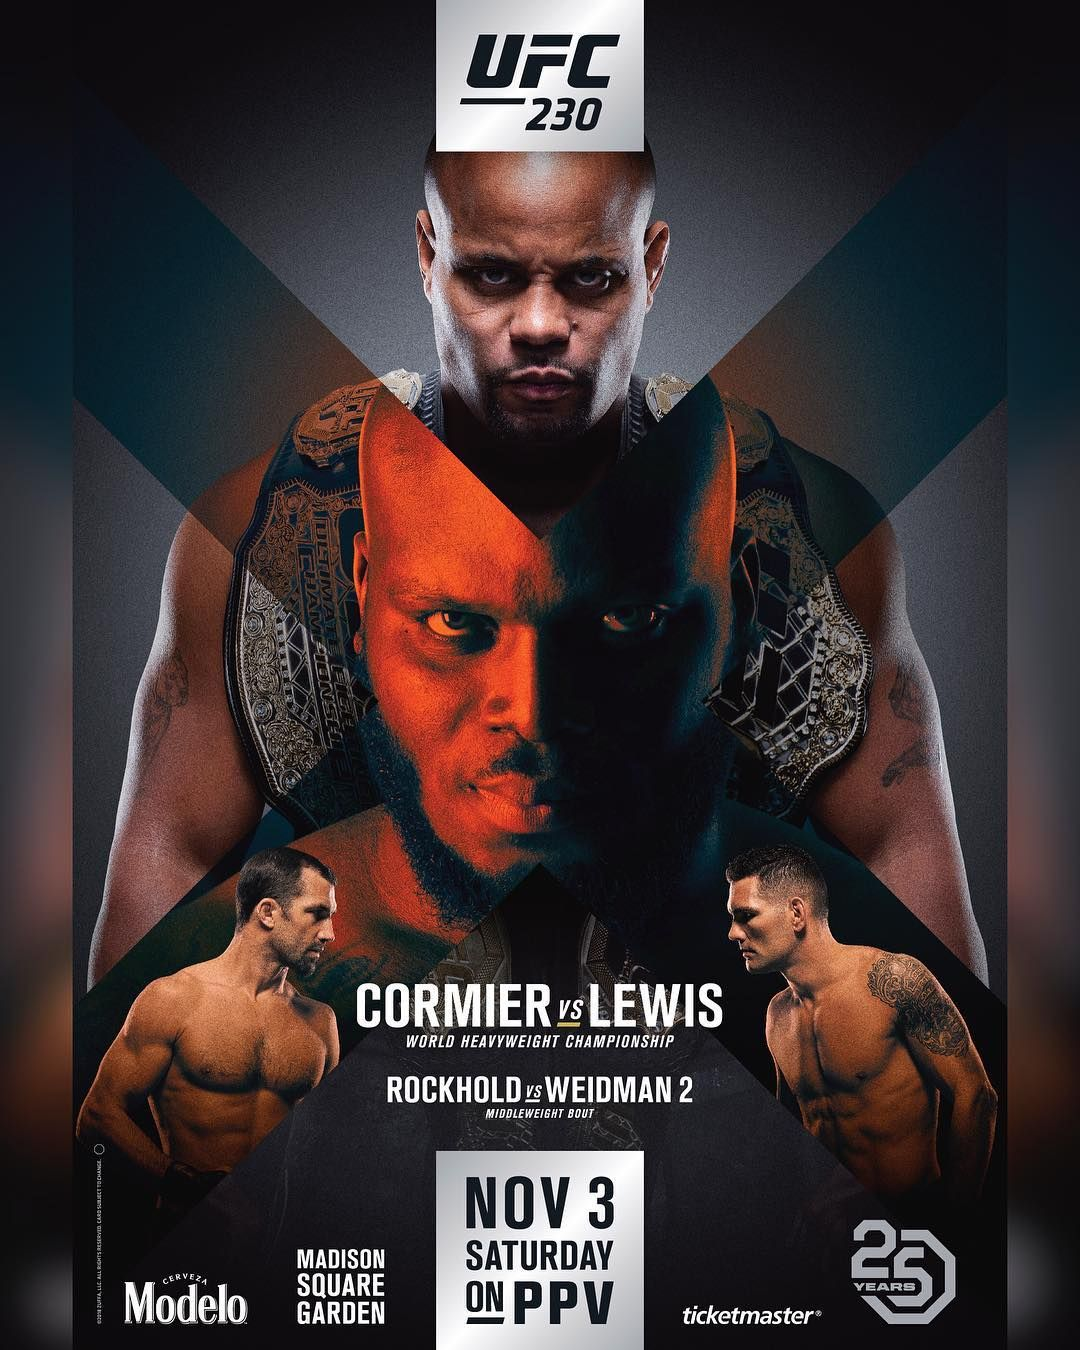 It 39 S Time Ufc230 Dc Mma Vs Thebeastufc The Official Poster Has Dropped Ufc Poster Ufc Boxing Posters